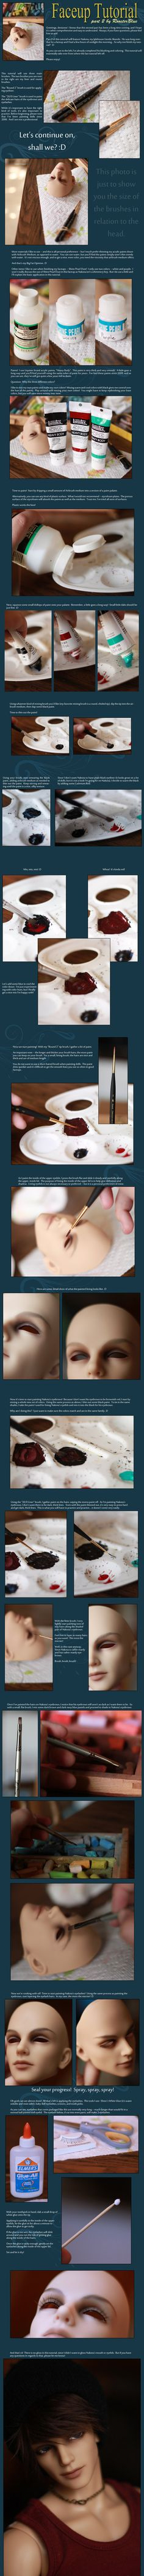 BJD Faceup Tutorial - Part 2 by *RoosterBlue on deviantART